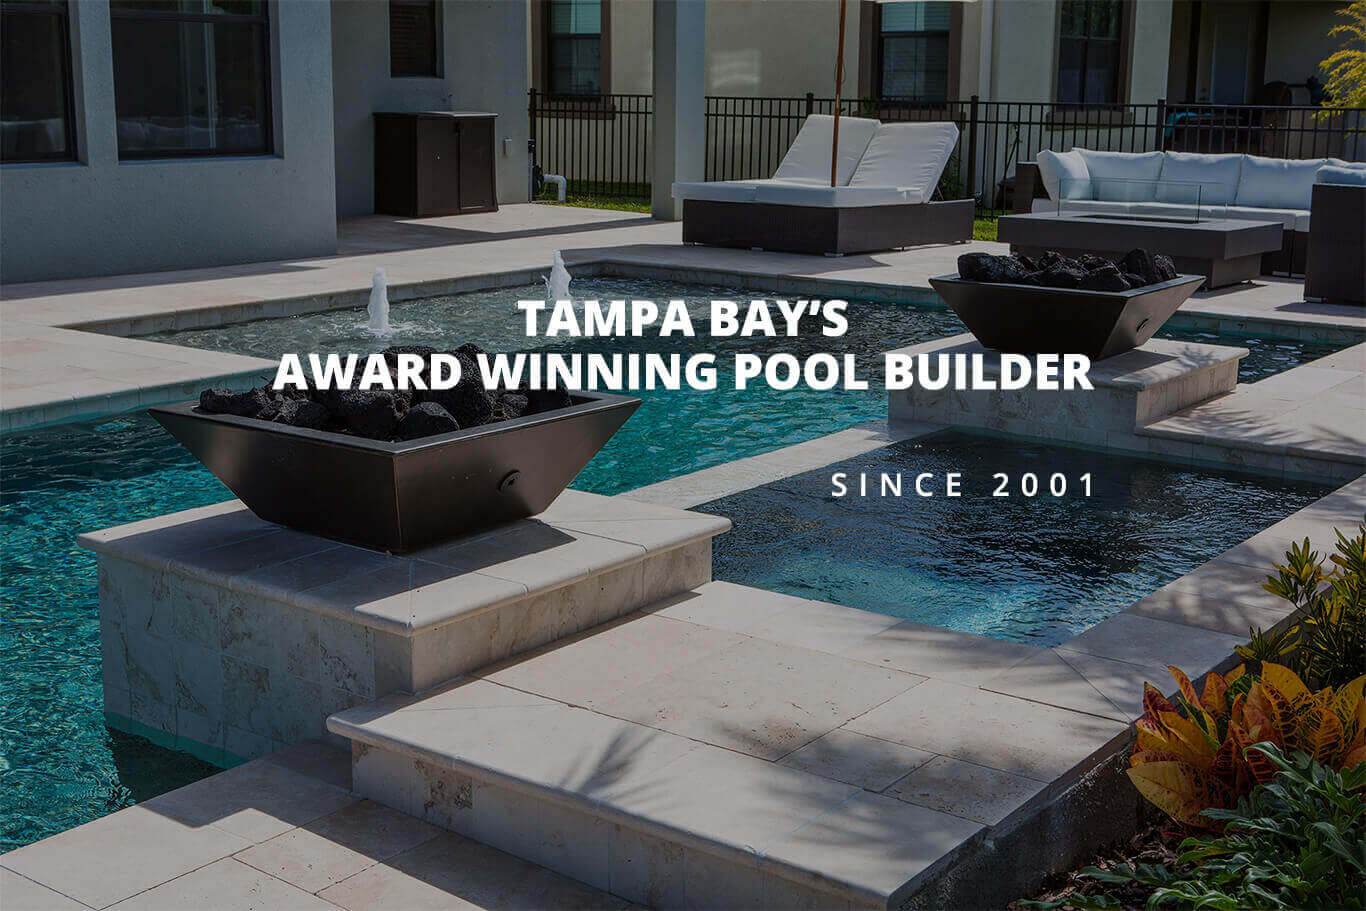 Welcome to T&a Bay Pools & Pool Builder Tampa Bay | Award Winning Pool Builder Brandon